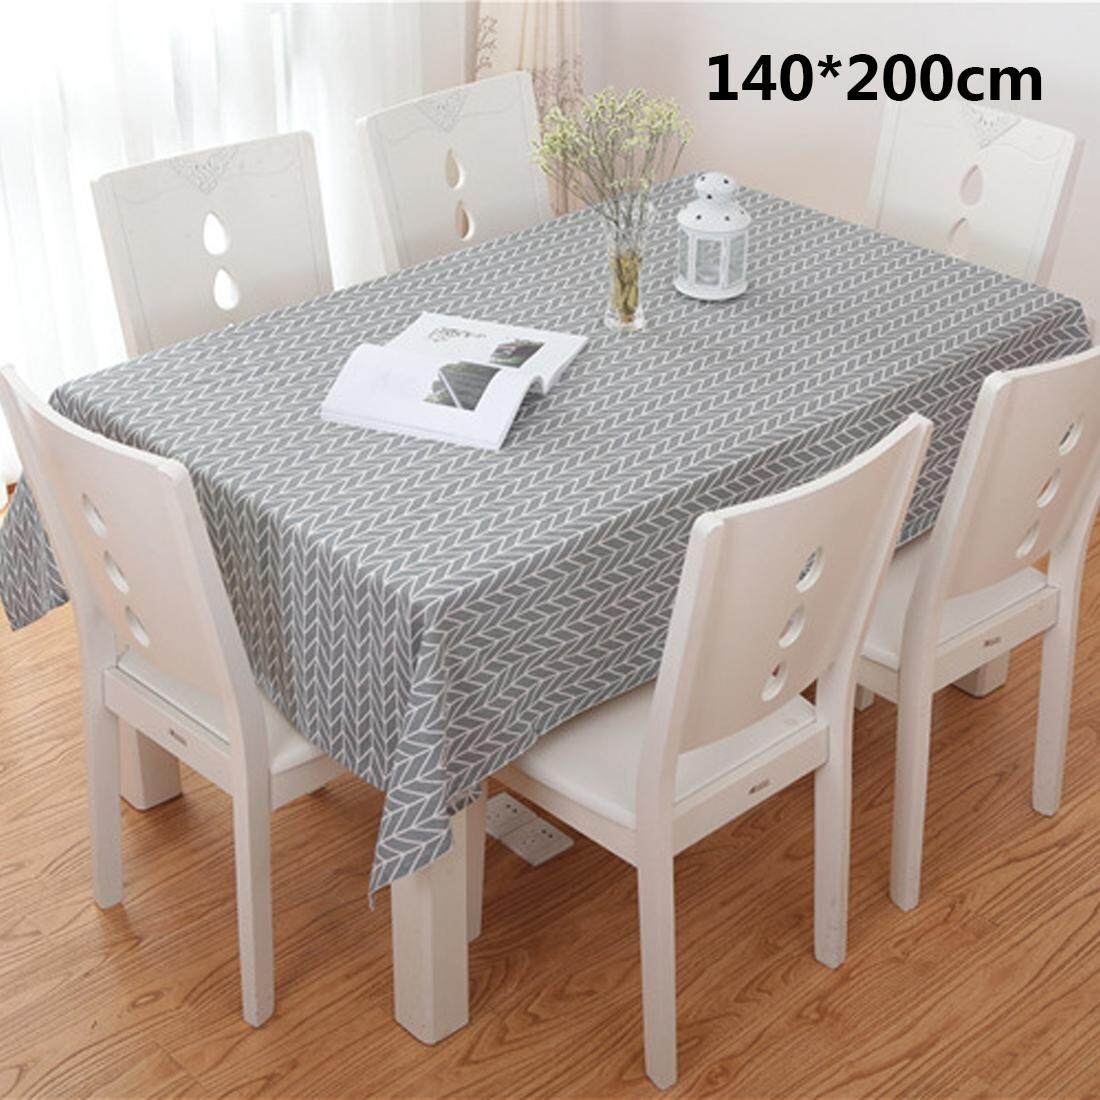 da04450cdd9 Cotton Heat Resistant Waterproof Dining Table Cloths Home Decor 140 200cm -  intl